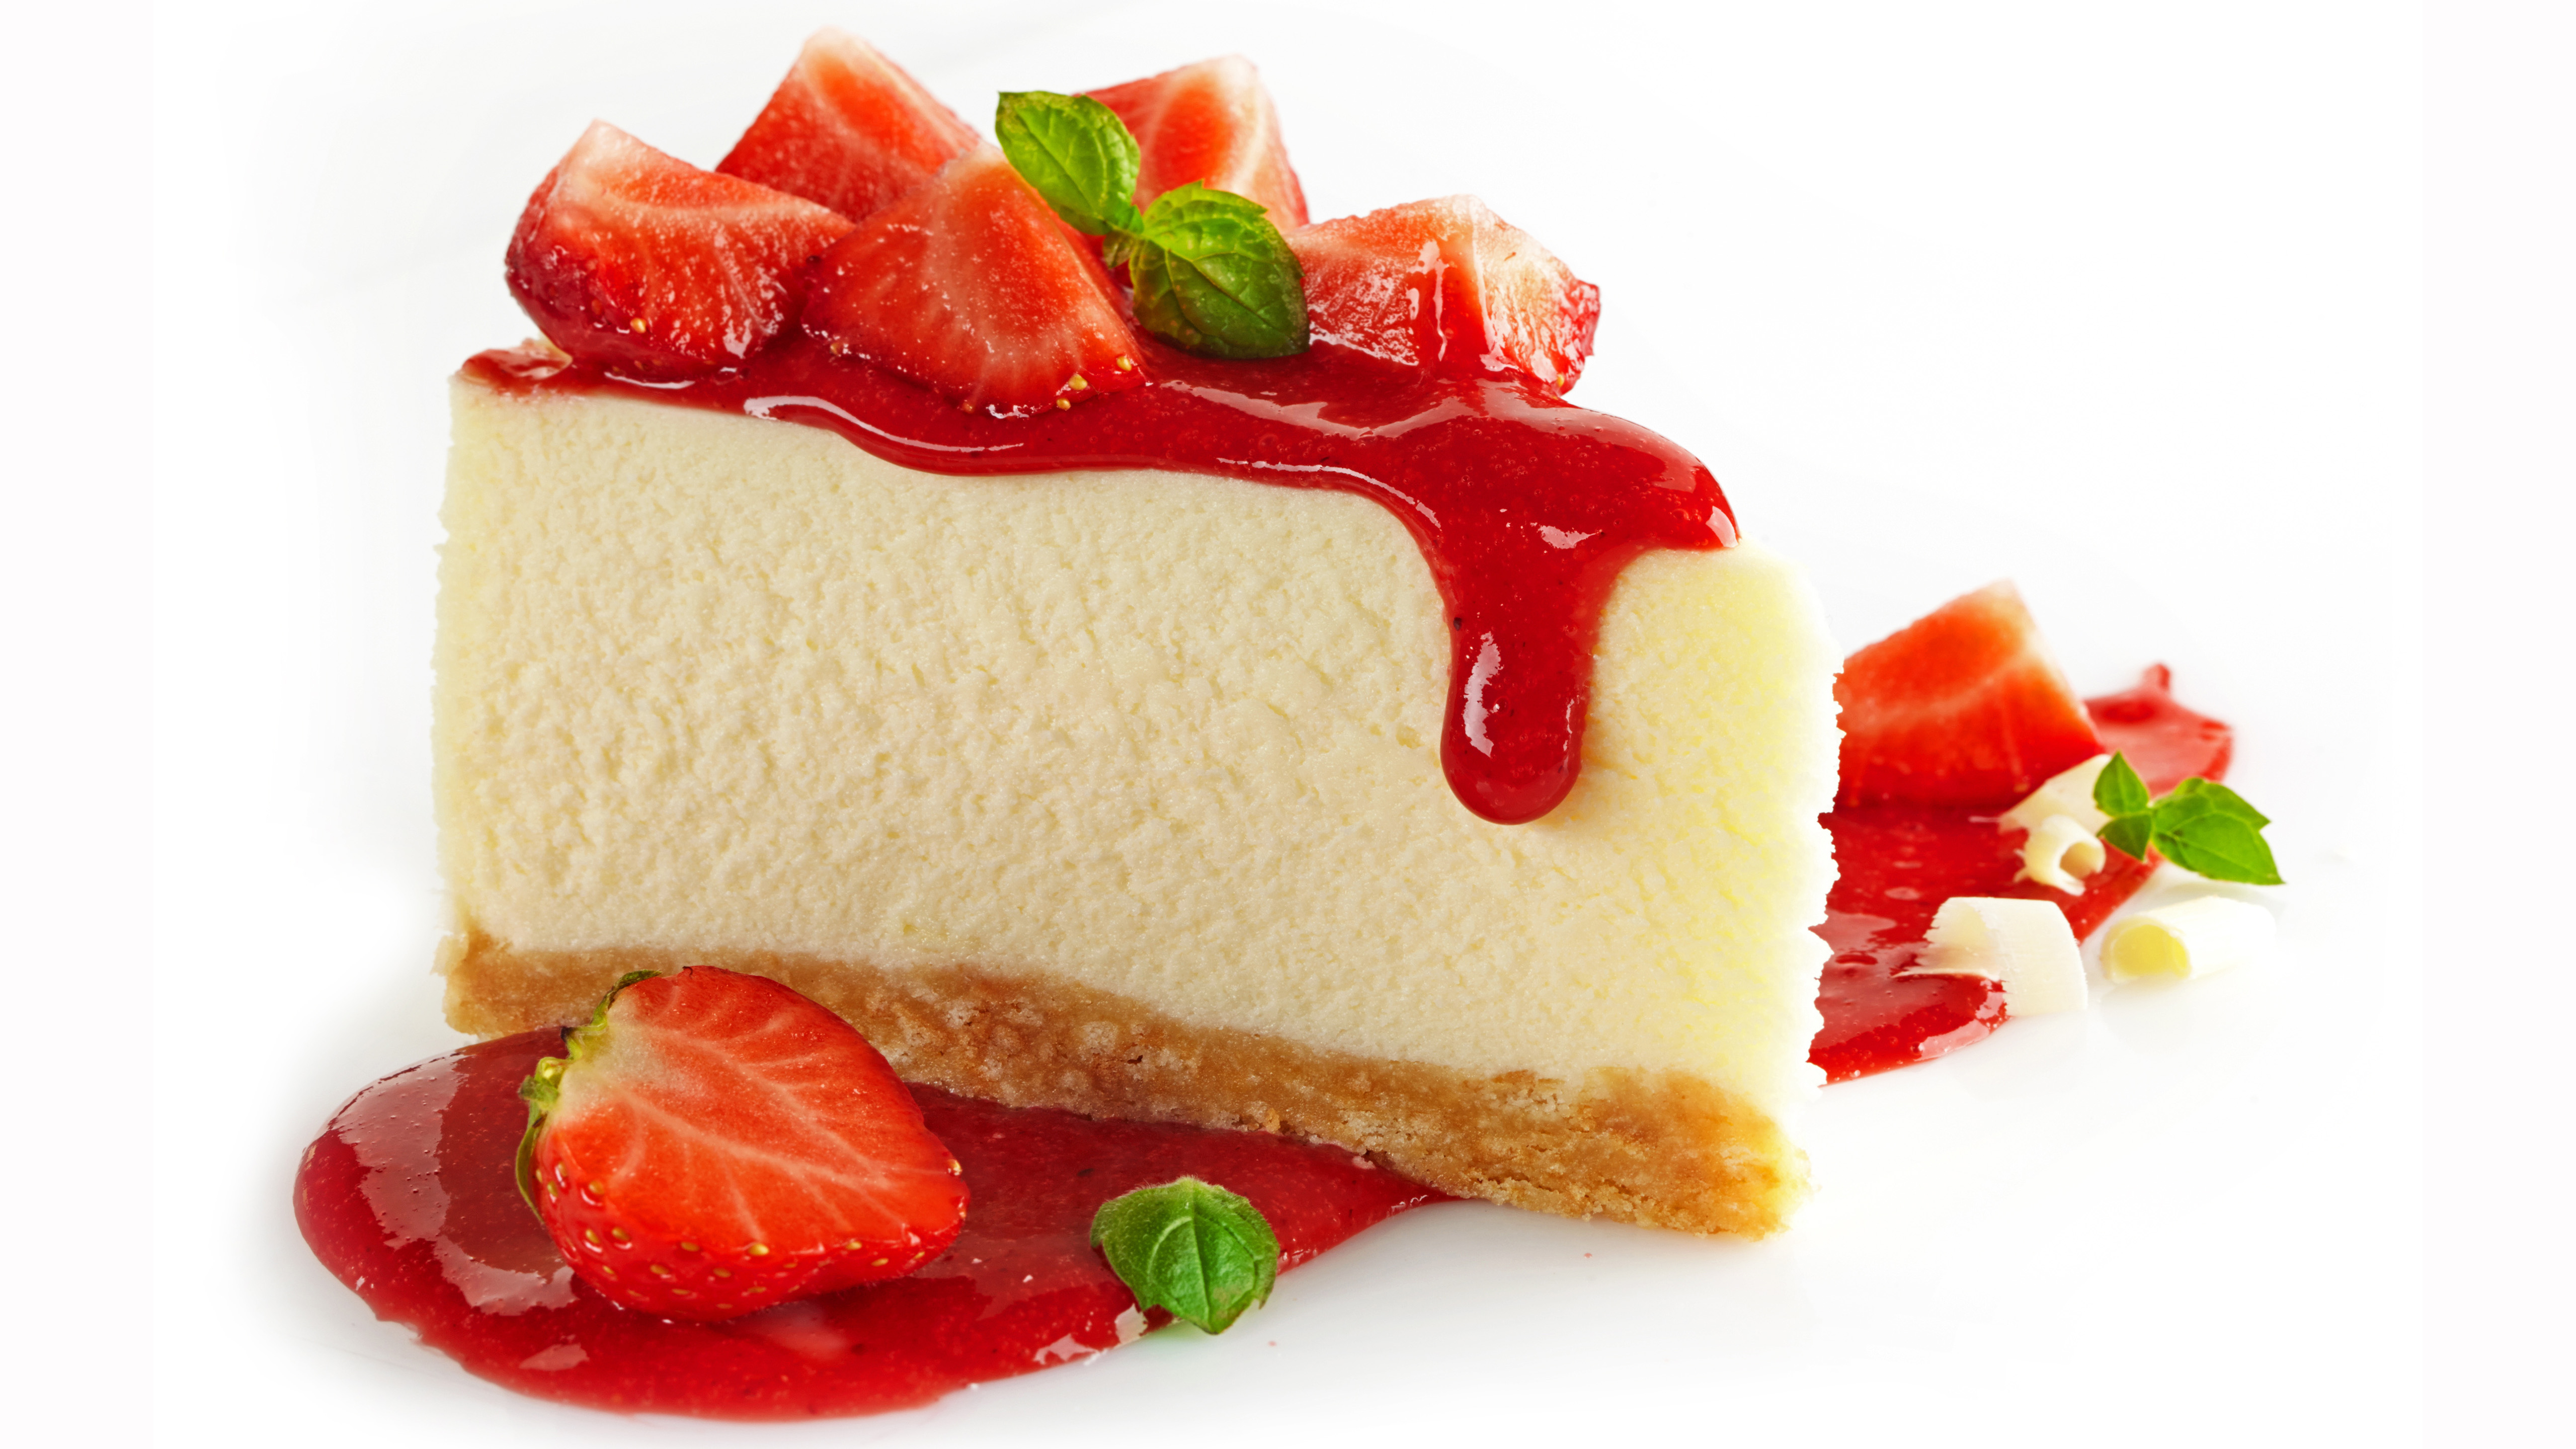 cheesecake-strawberry-dessert-667.jpg